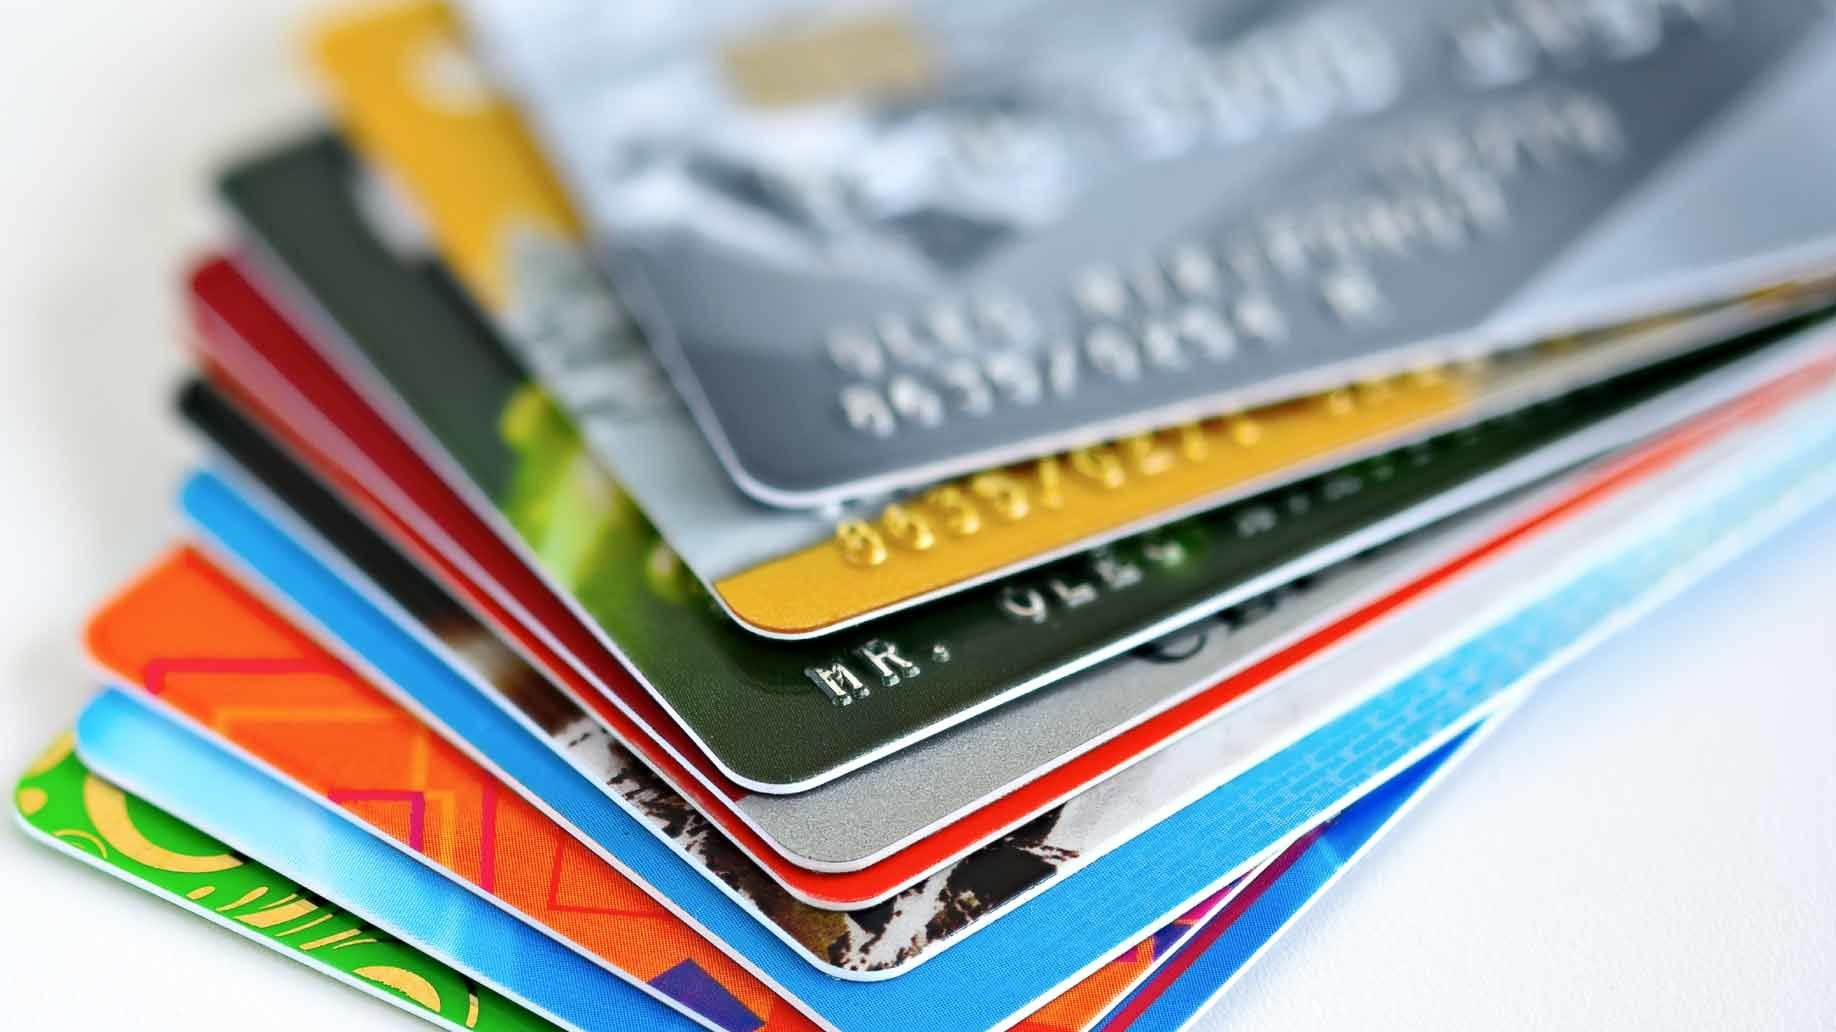 Sbs llc northwestern usa spokane wa credit card processing setting up our new service for your business takes only minutes with no interruptions in your day to day operations indeed high quality credit card reheart Gallery